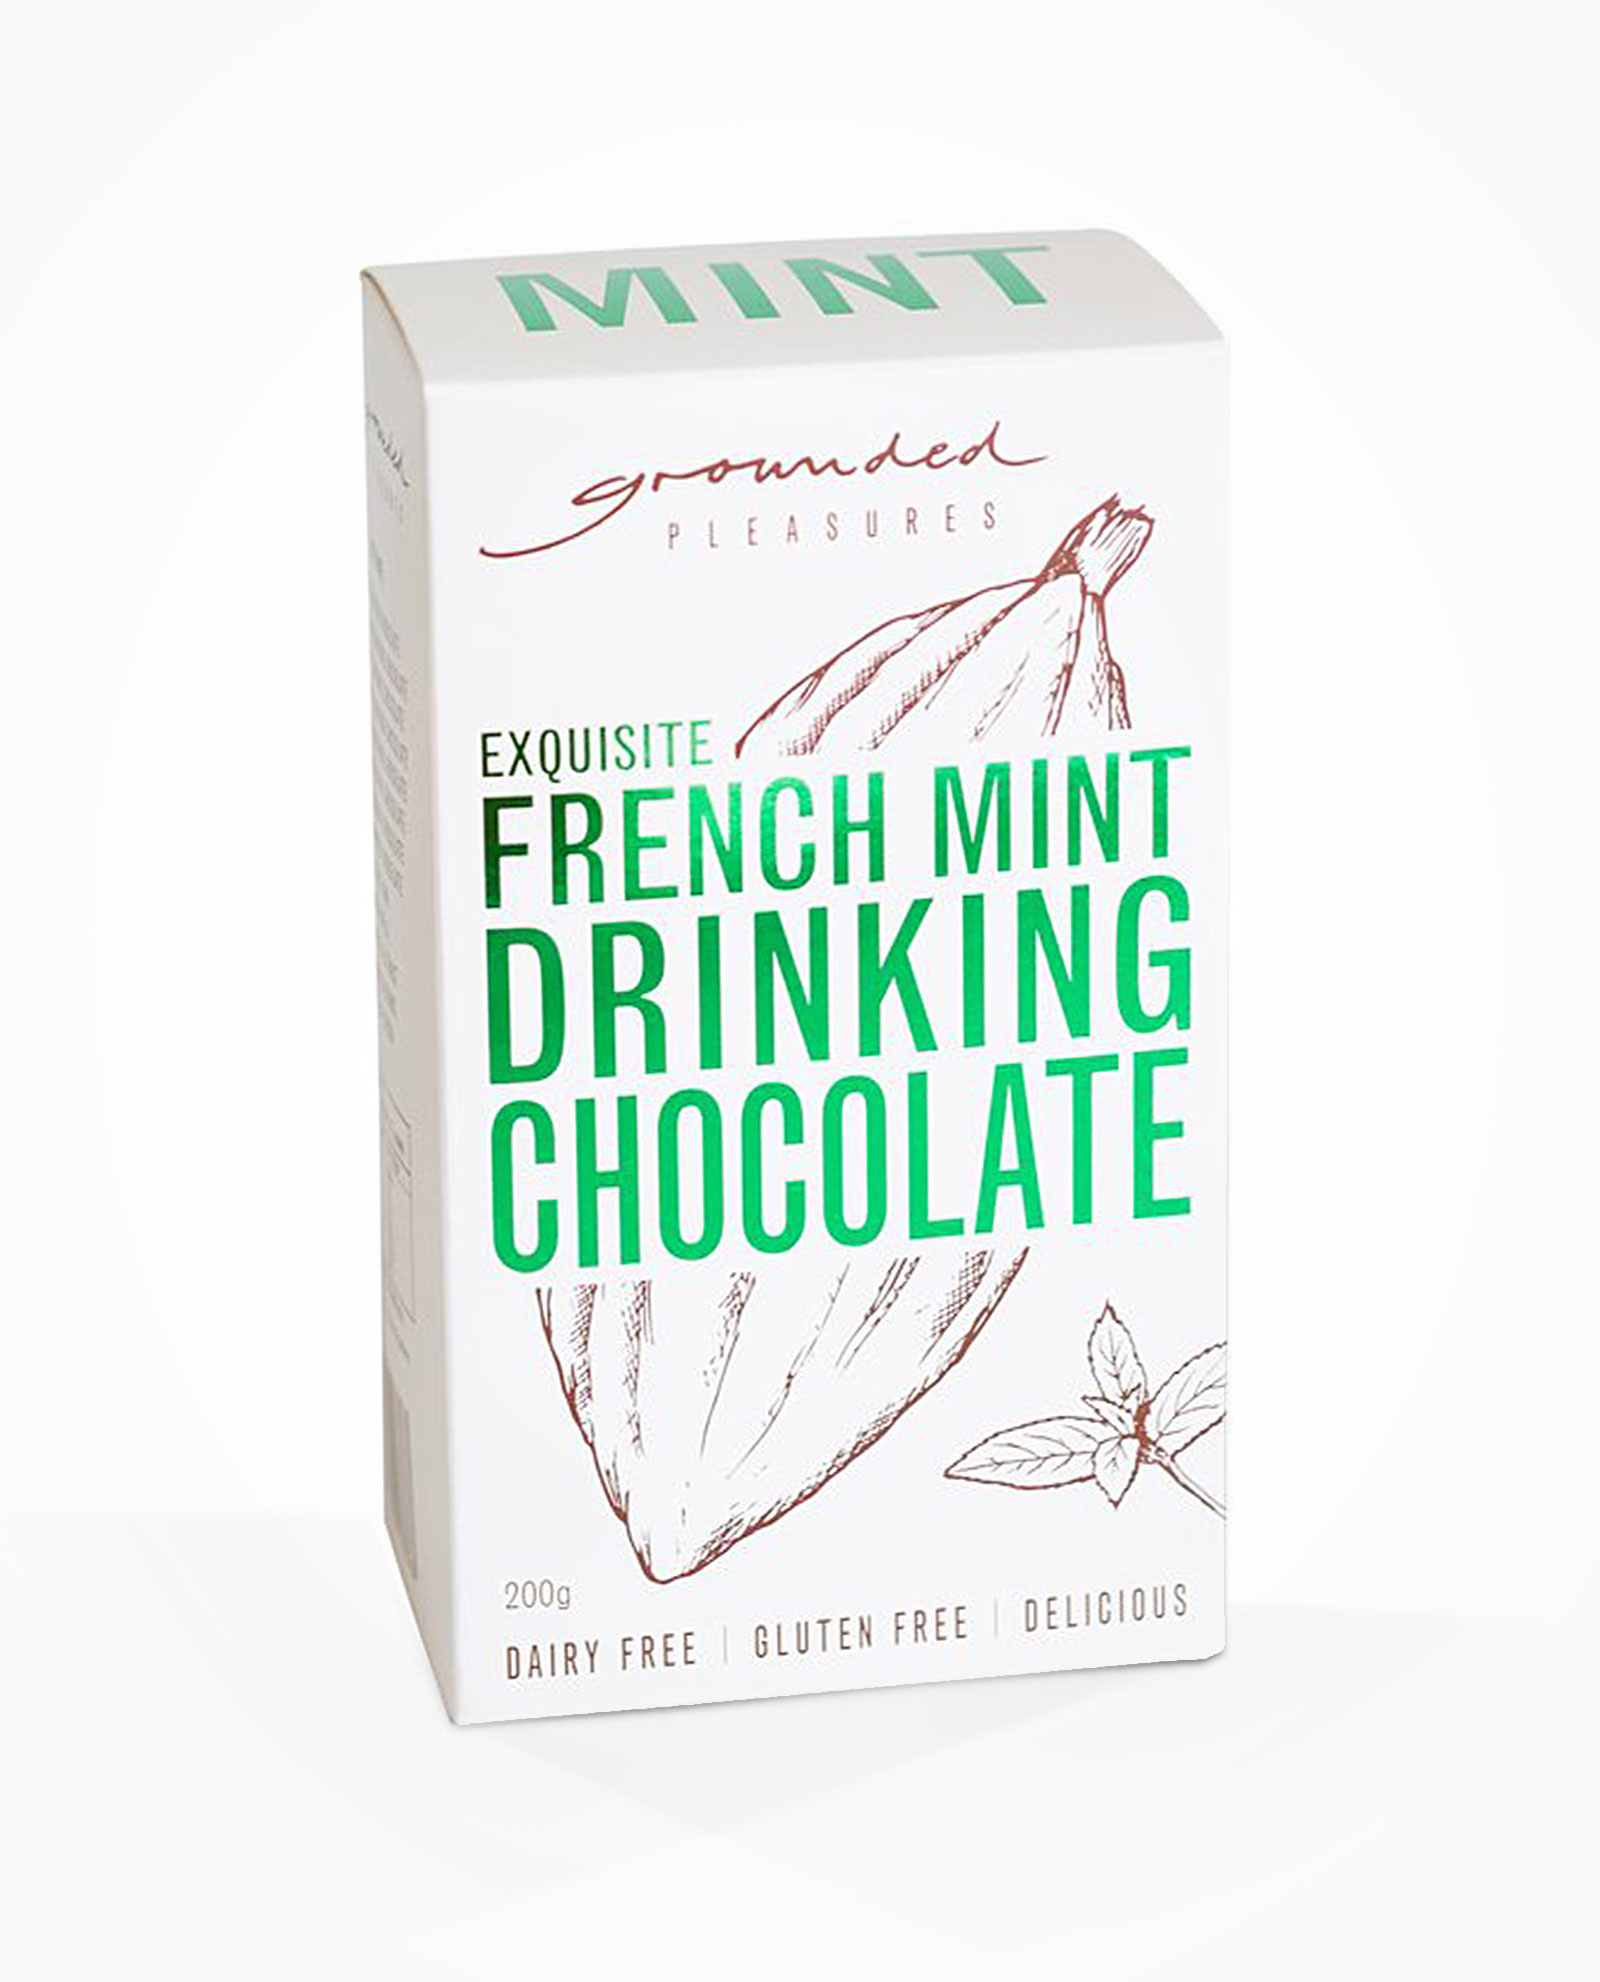 grounded pleasures french mint drinking chocolate